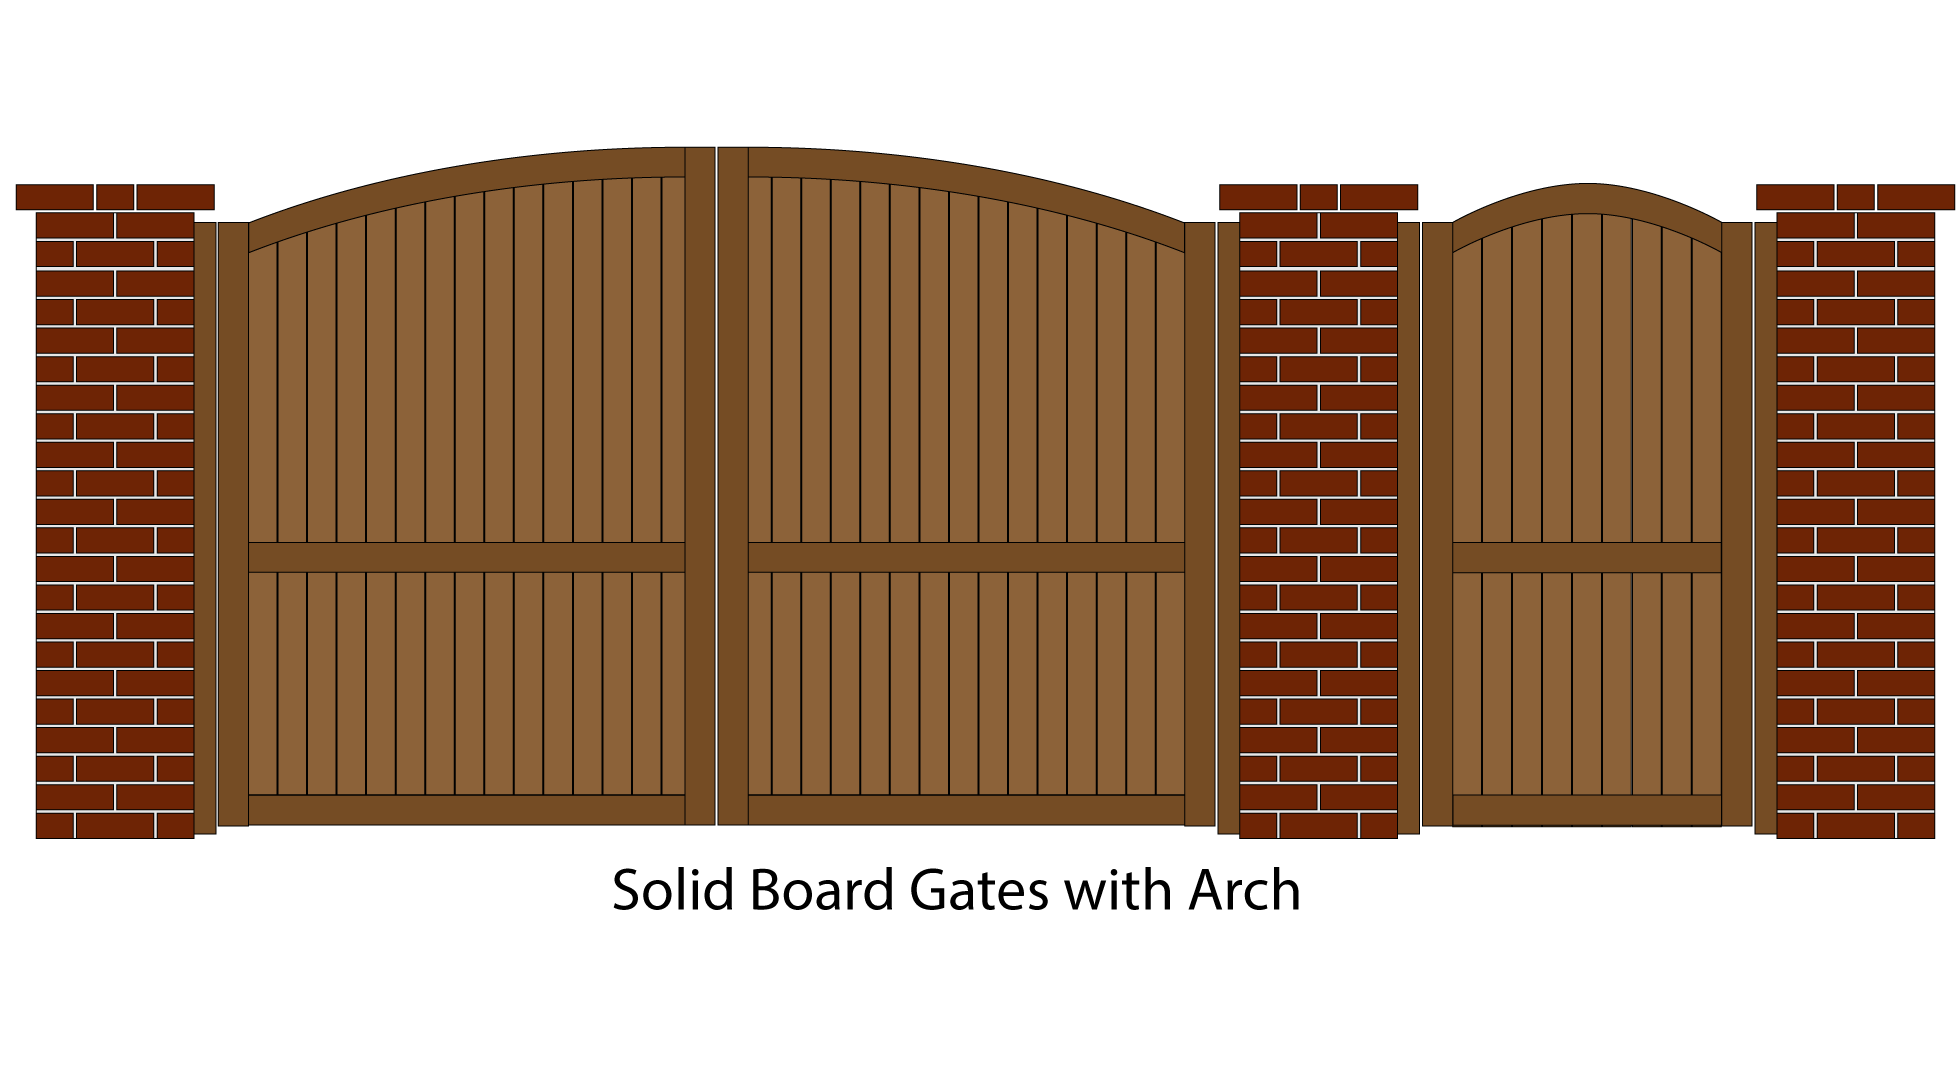 Solid Board Gates with Arch